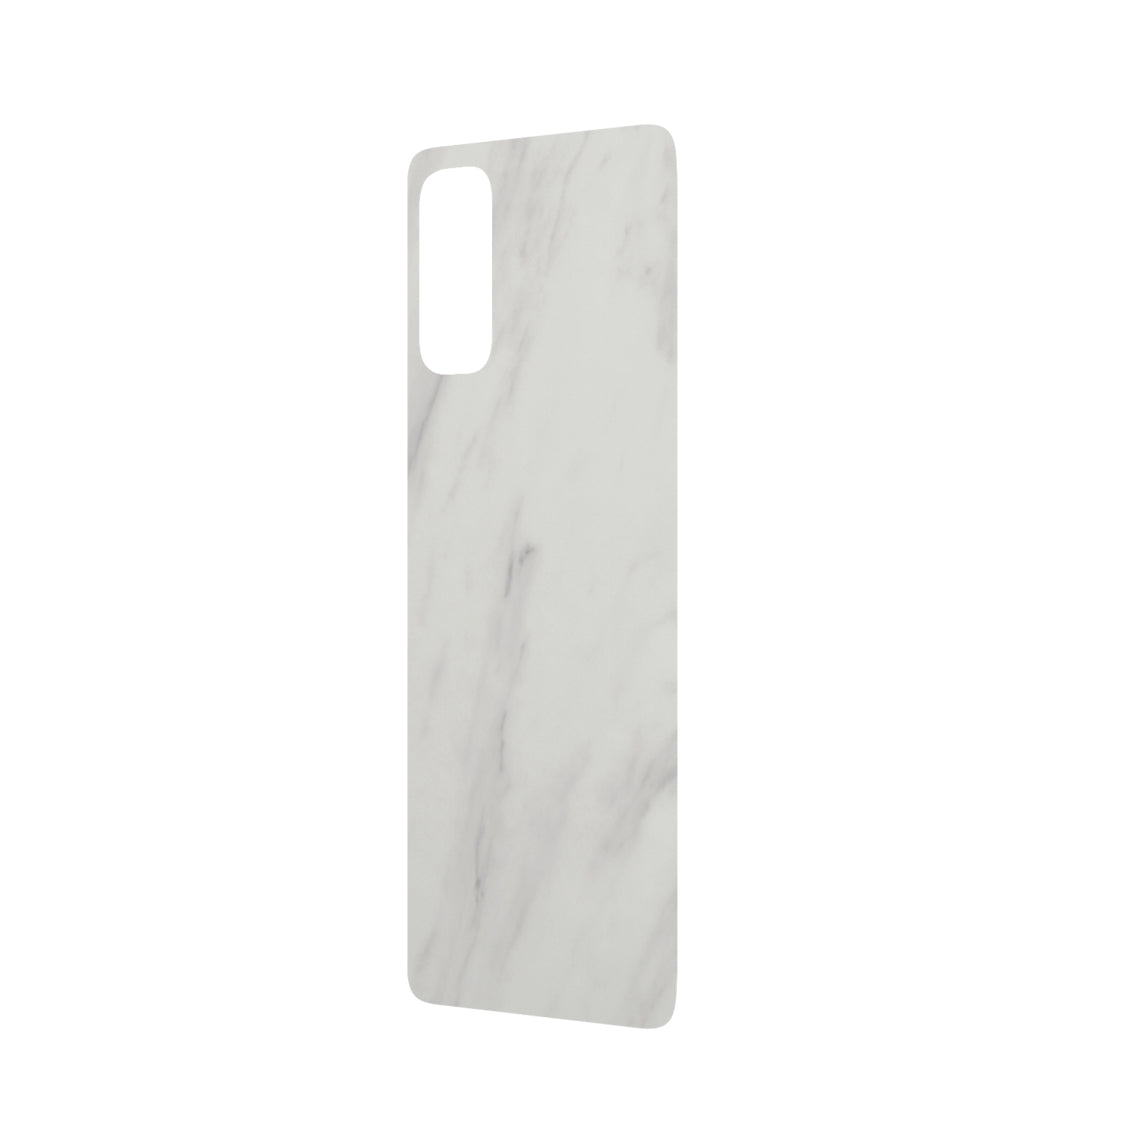 RhinoShield Impact Skin For Samsung S20 - White Marble - Macintosh Addict